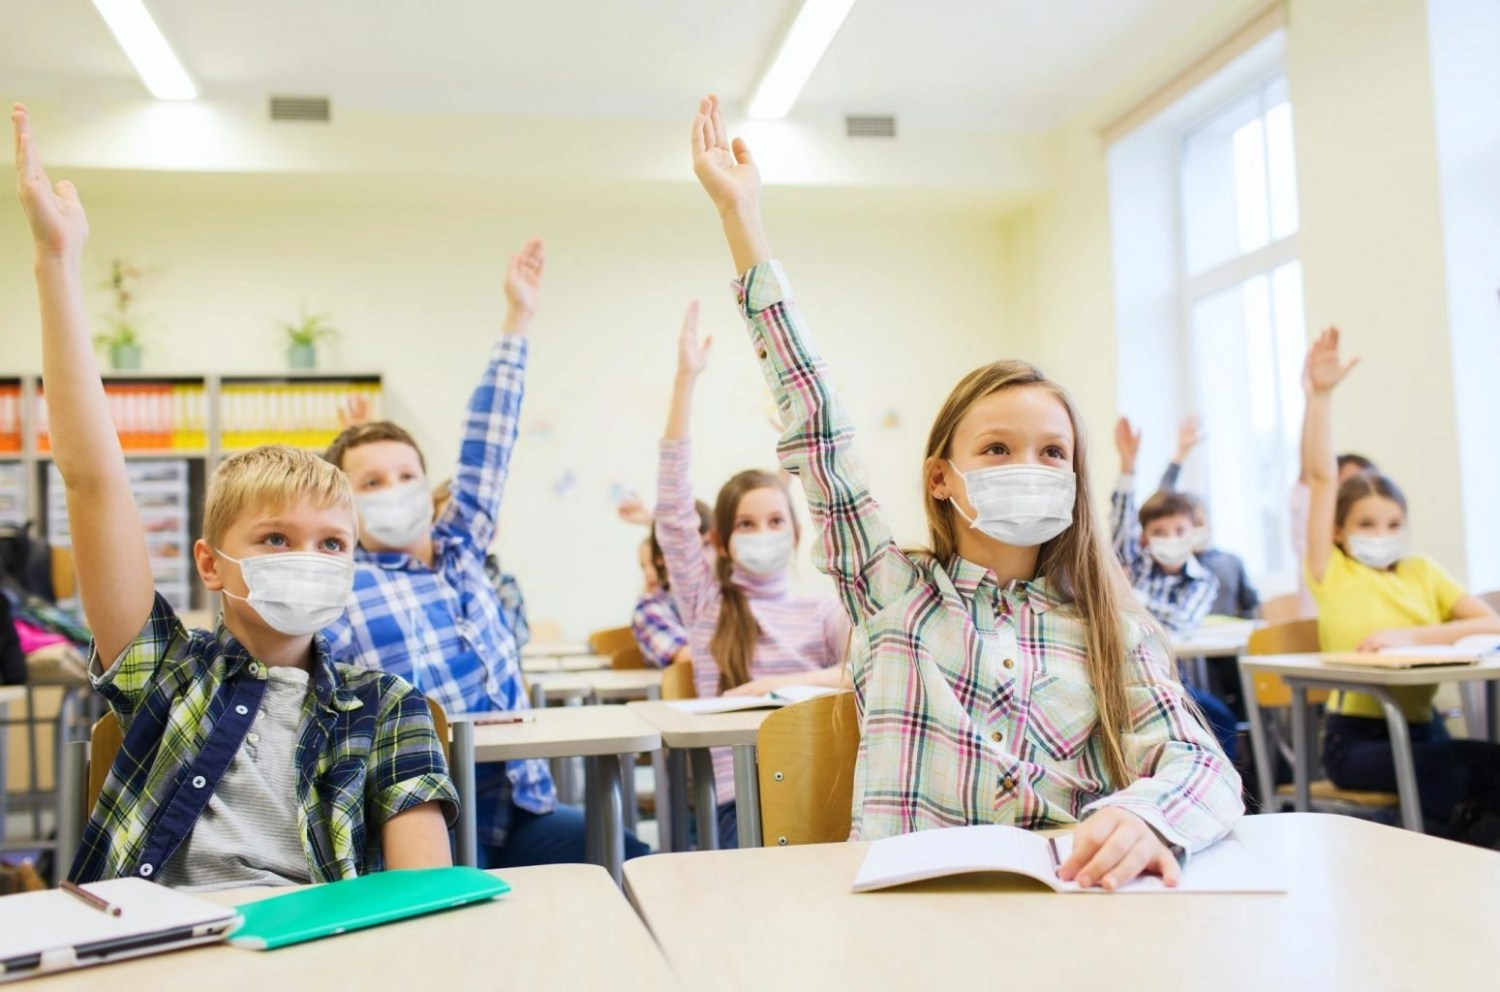 Improve School Security and Student Safety Utilizing Window Films - School safety and security with window films. Window Film information